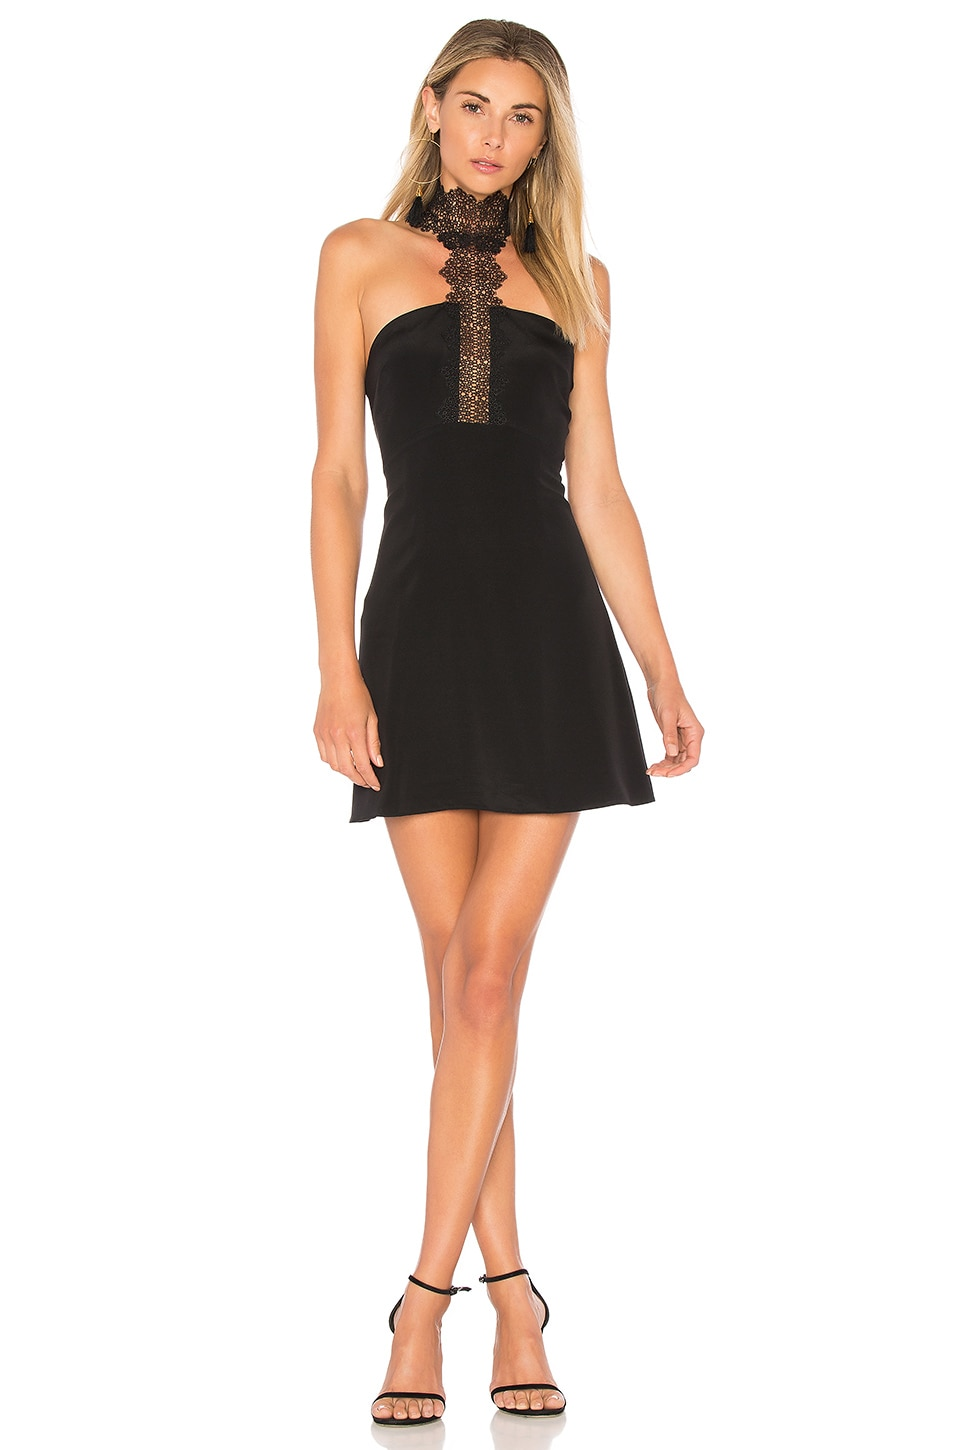 The Callie Dress by CAMI NYC